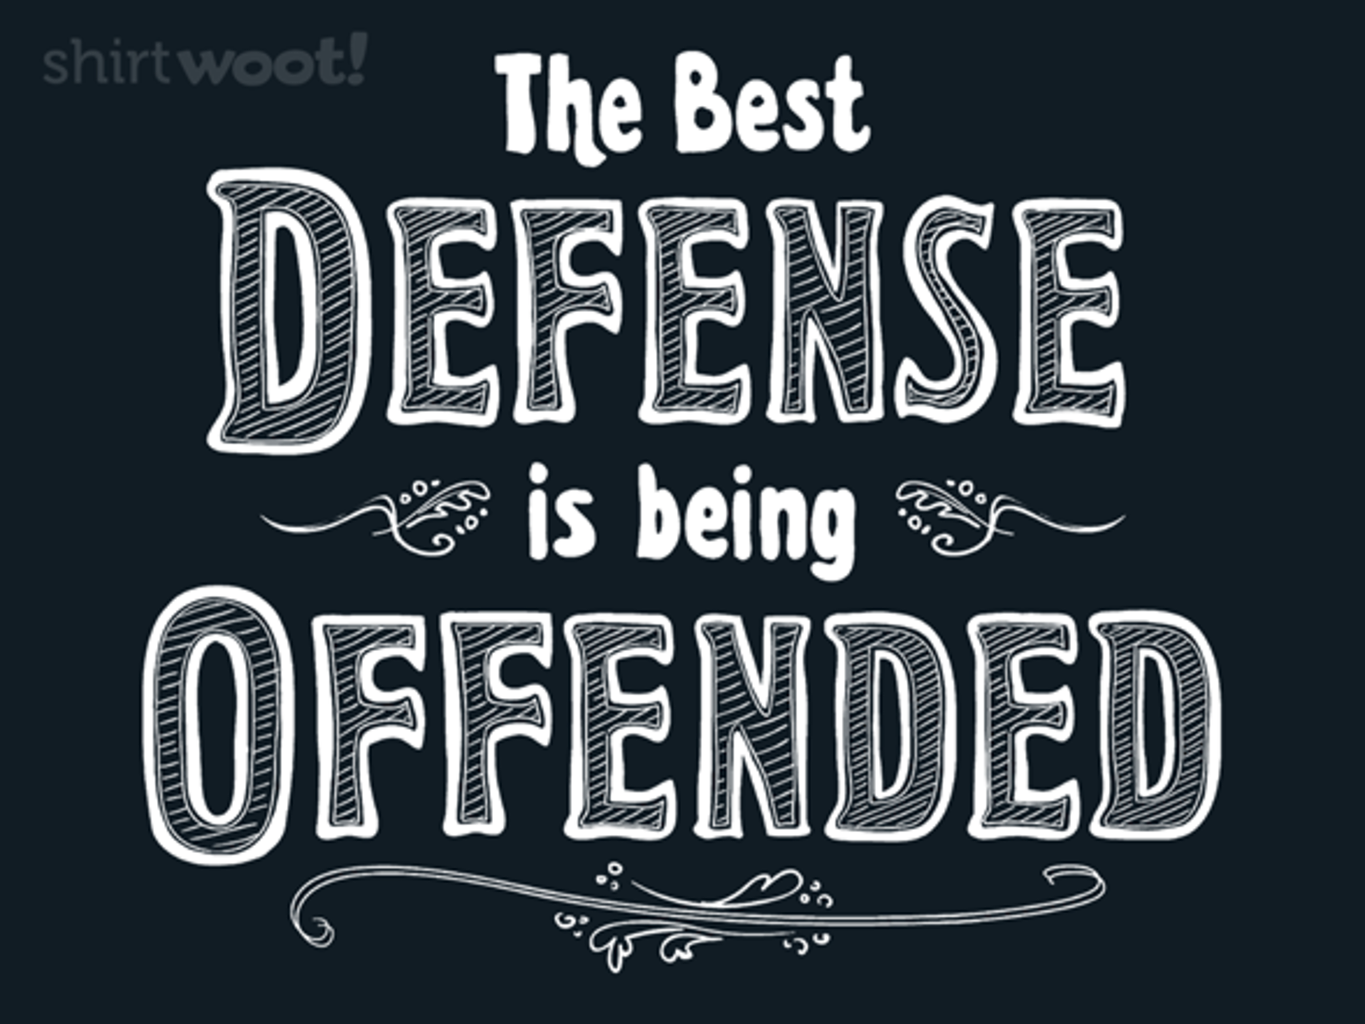 Woot!: Best Defense is Being Offended